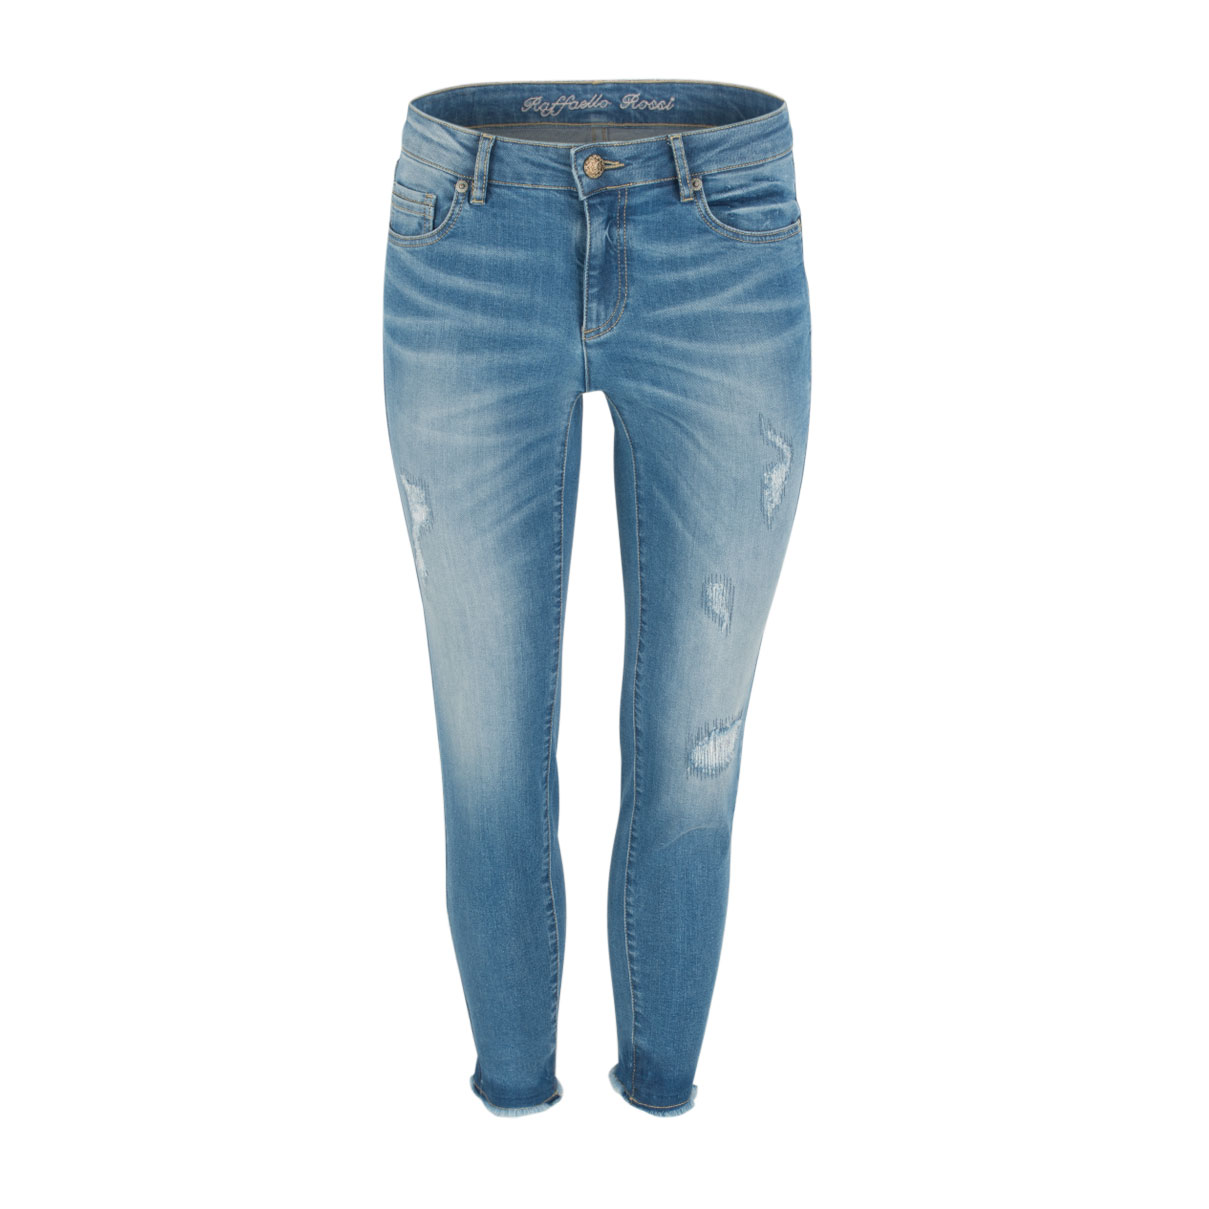 Jeans - Jane 7/8 - Slim Fit